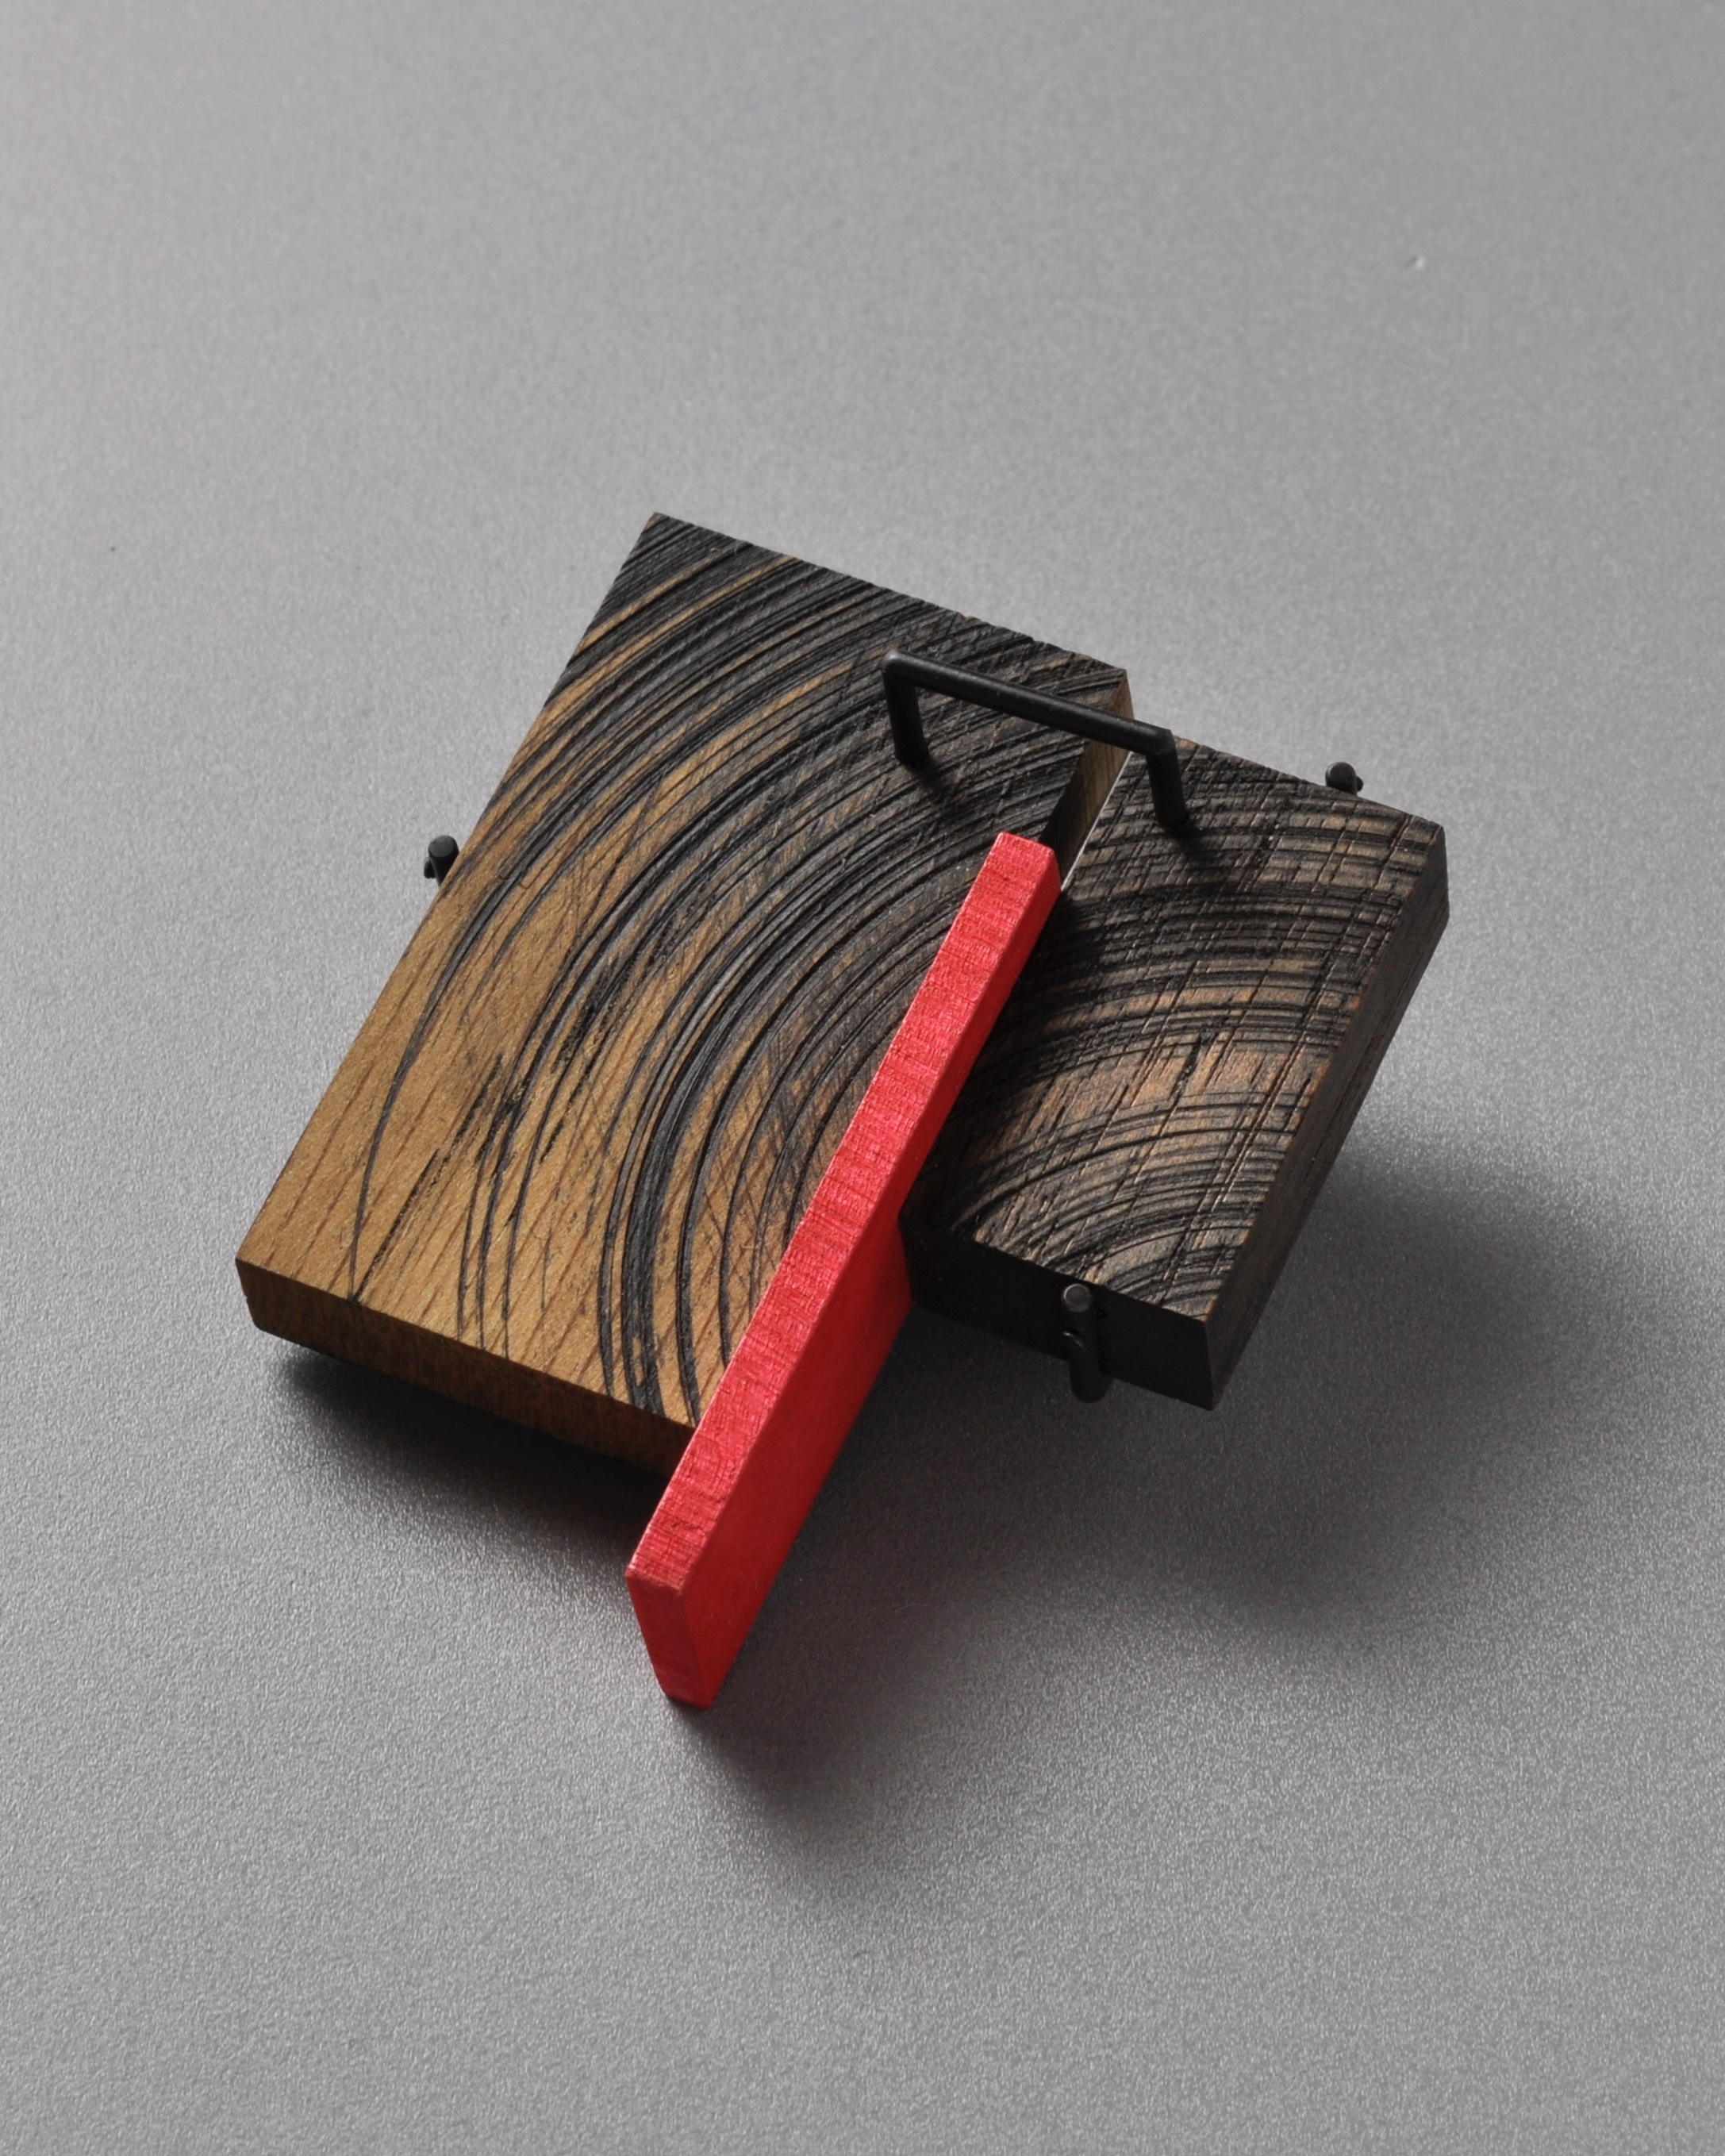 Julia Turner, Brooch, Wood, paint, steel.